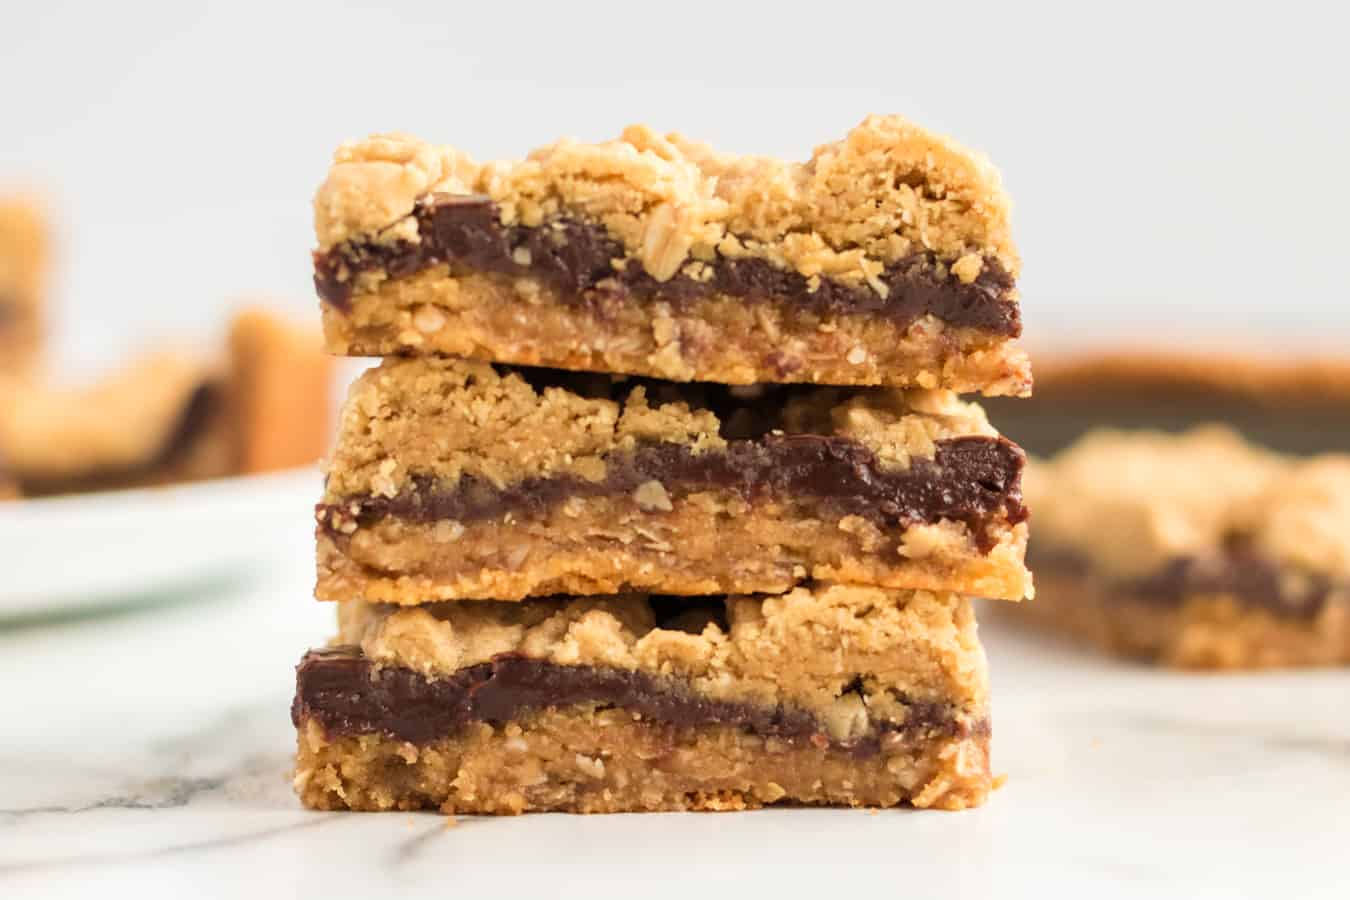 Perfectly equal parts chewy, crusty, and soft, these Peanut Butter Oat Jumbles bars are one of the best chocolate-peanut butter cookie desserts around.